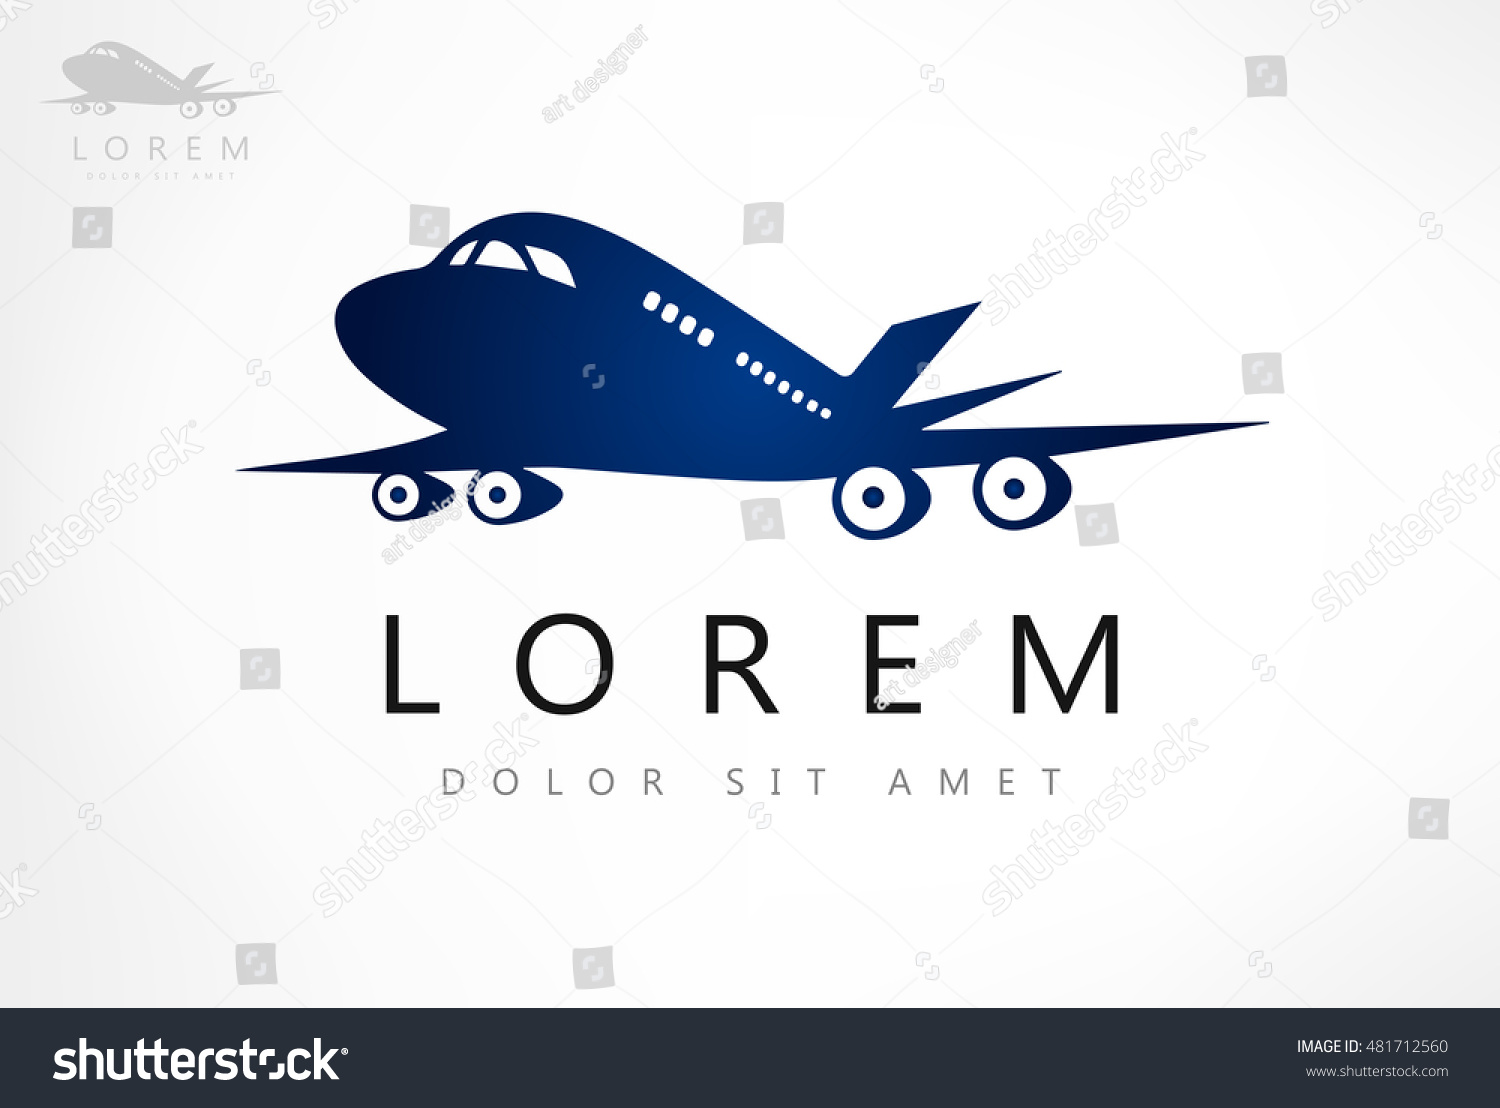 Aircraft Vector Design Business Card Template Stock Vector 481712560 ...